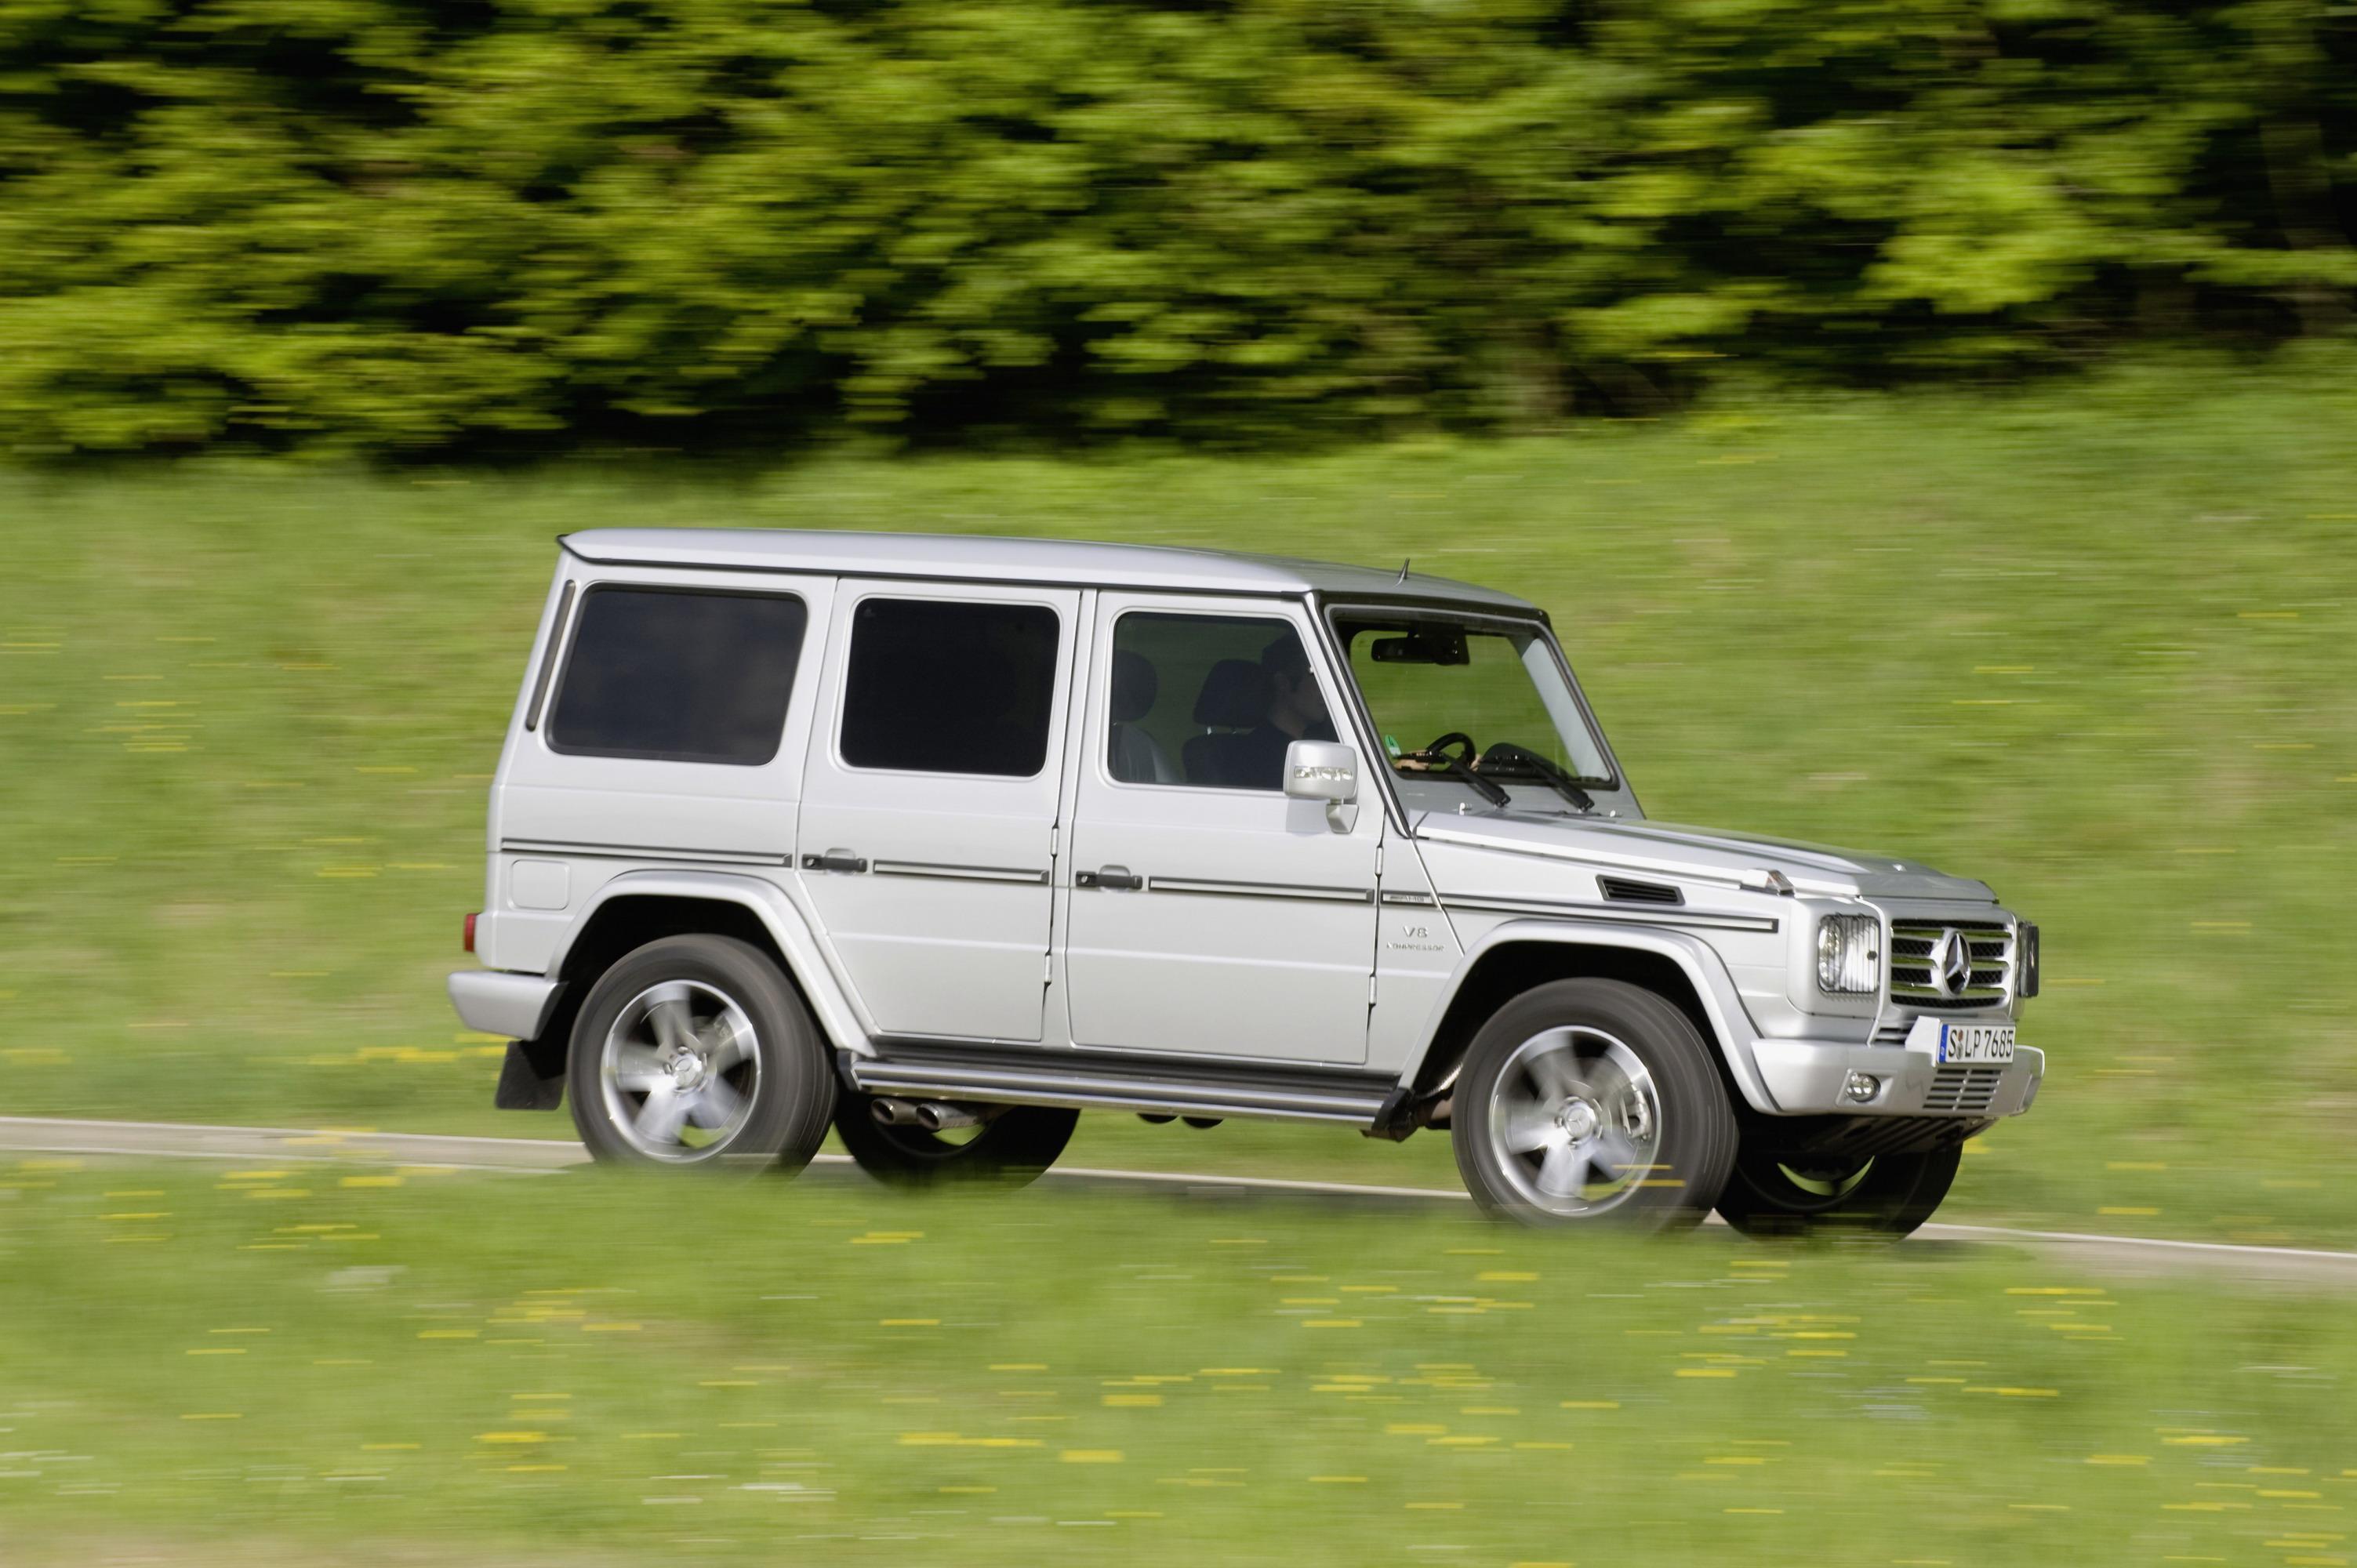 2009 mercedes g55 amg review - top speed